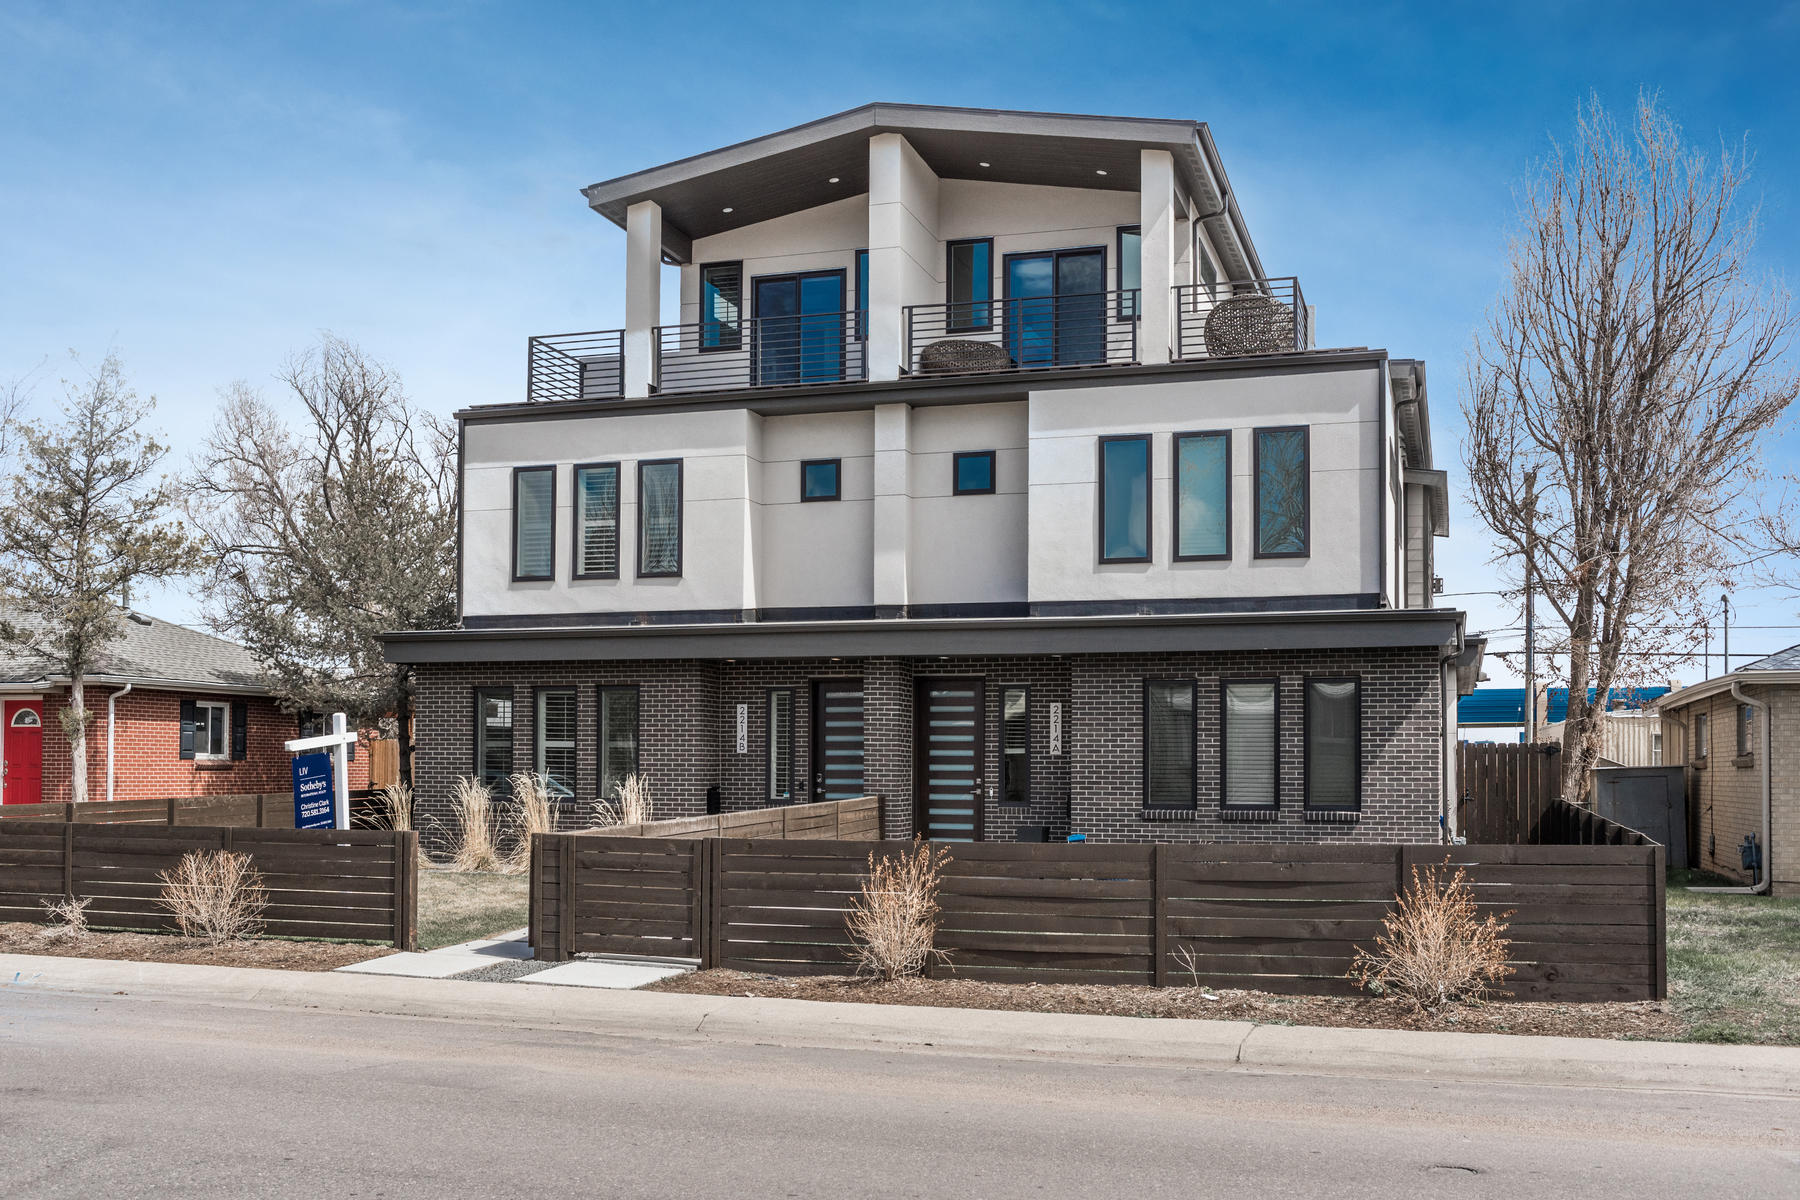 Condominiums for Sale at Stunning home in the heart of Edgewater with spectacular views of Sloan's Lake. 2214 Ames St. #B Edgewater, Colorado 80214 United States